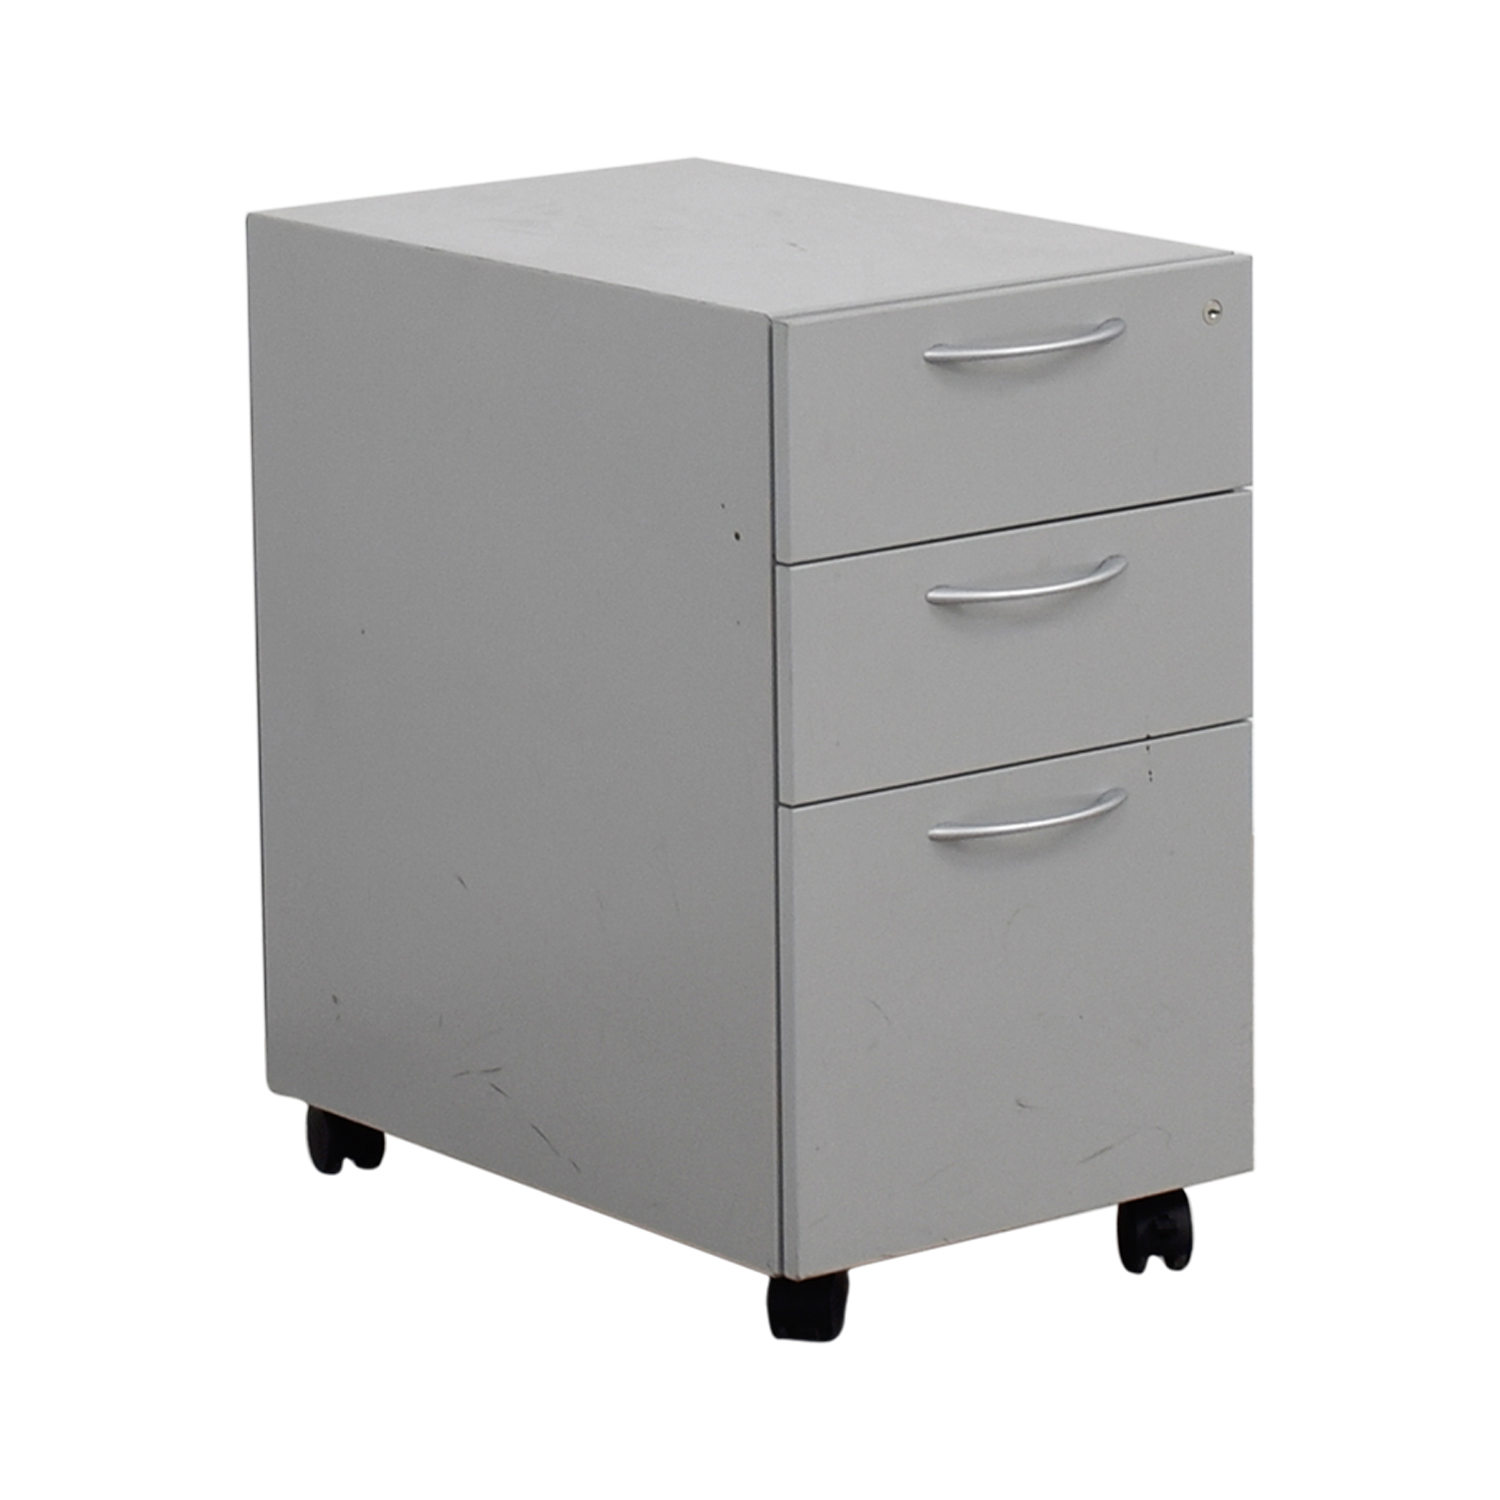 Allsteel Light Grey Two Drawer Cabinet On Casters Filing